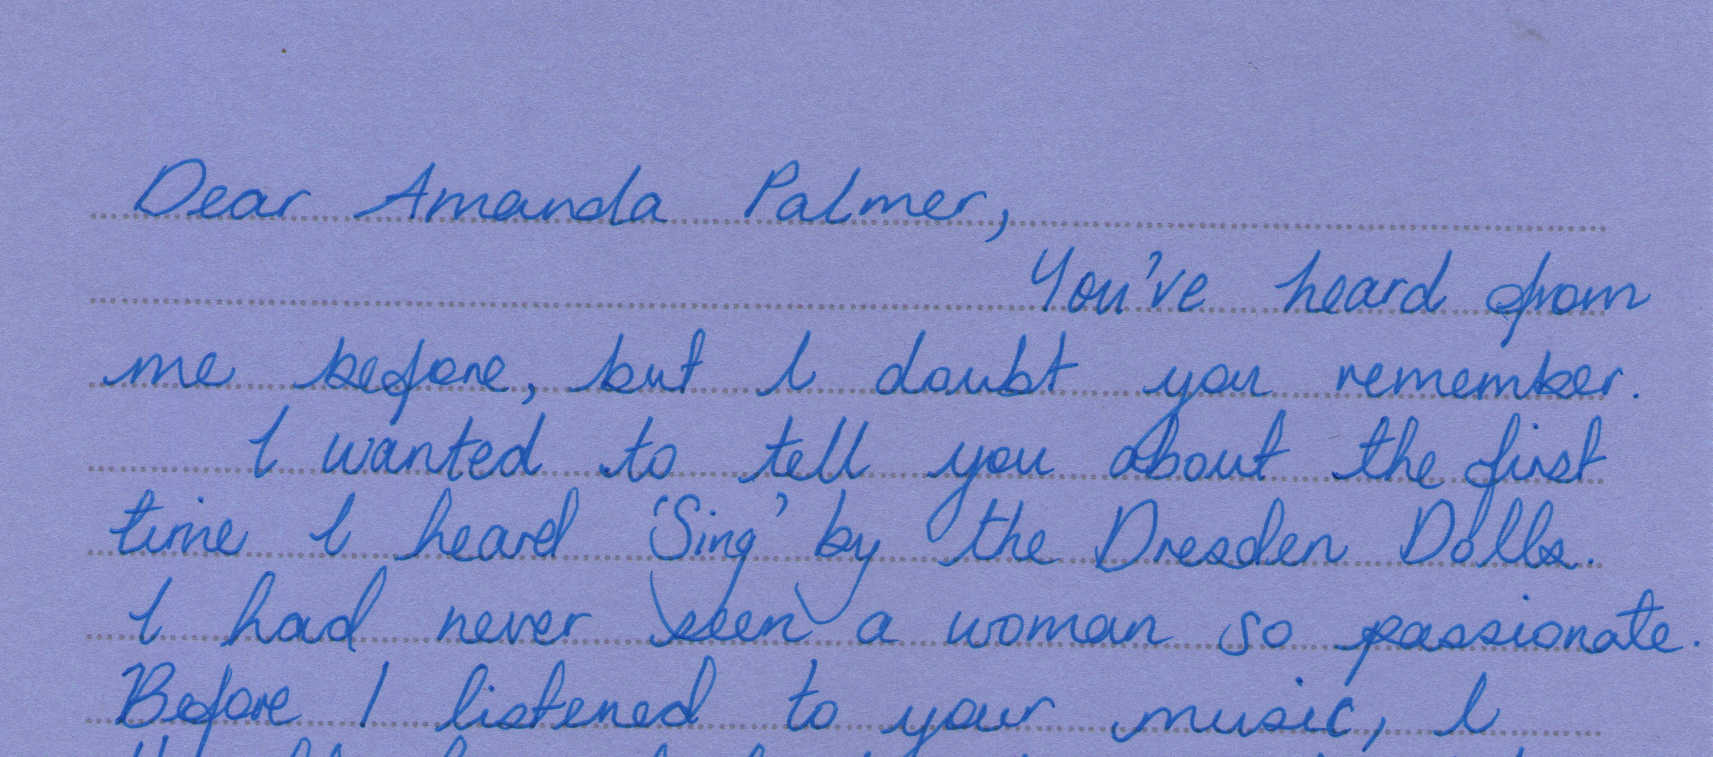 Letter to Amanda Palmer from Krystie Norcliffe